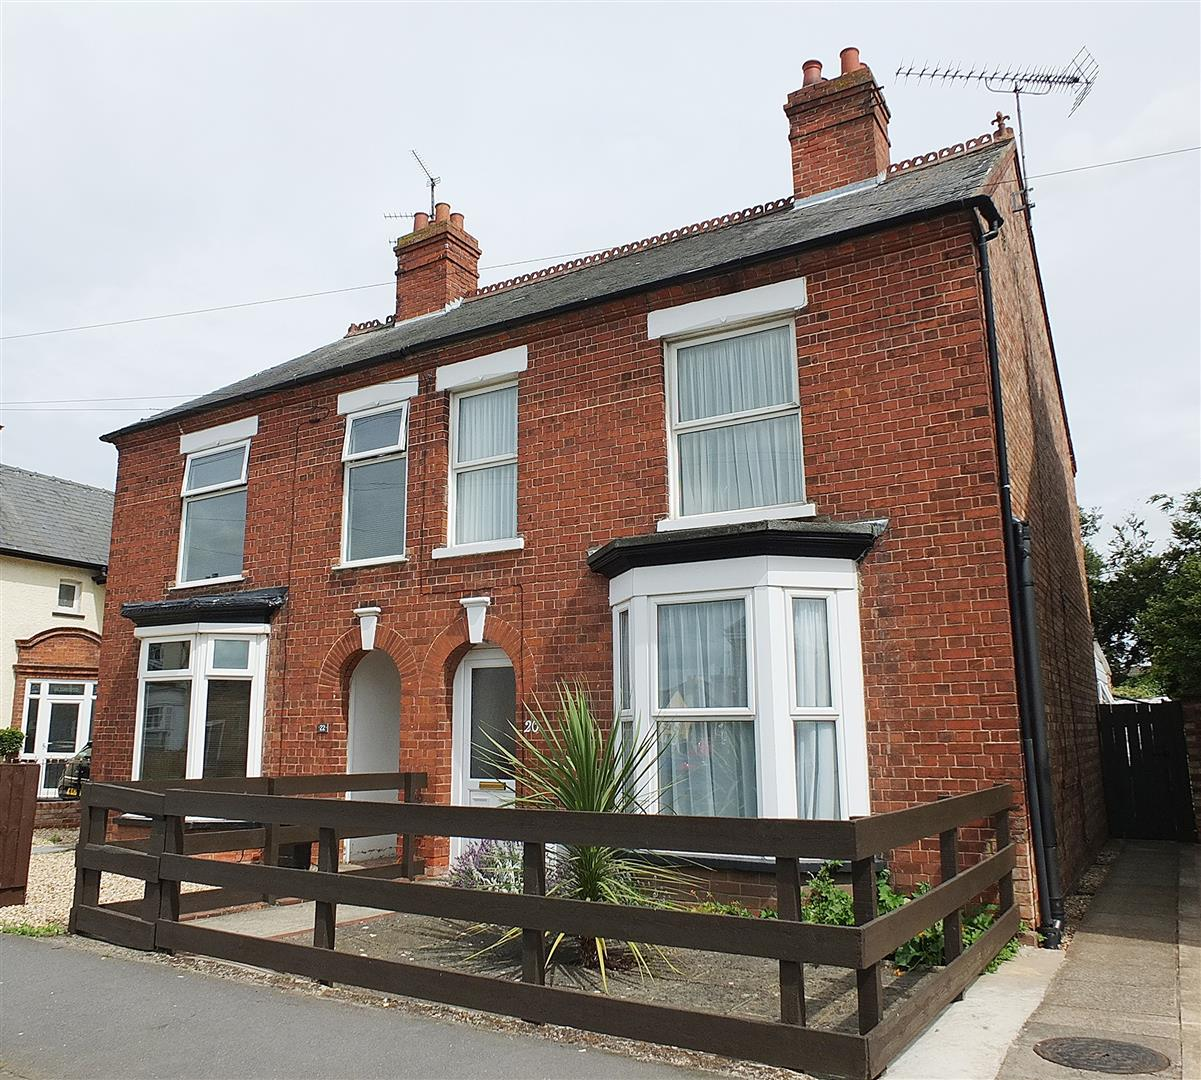 3 bed semi-detached house for sale in Sutton Bridge Spalding, PE12 9RA  - Property Image 1